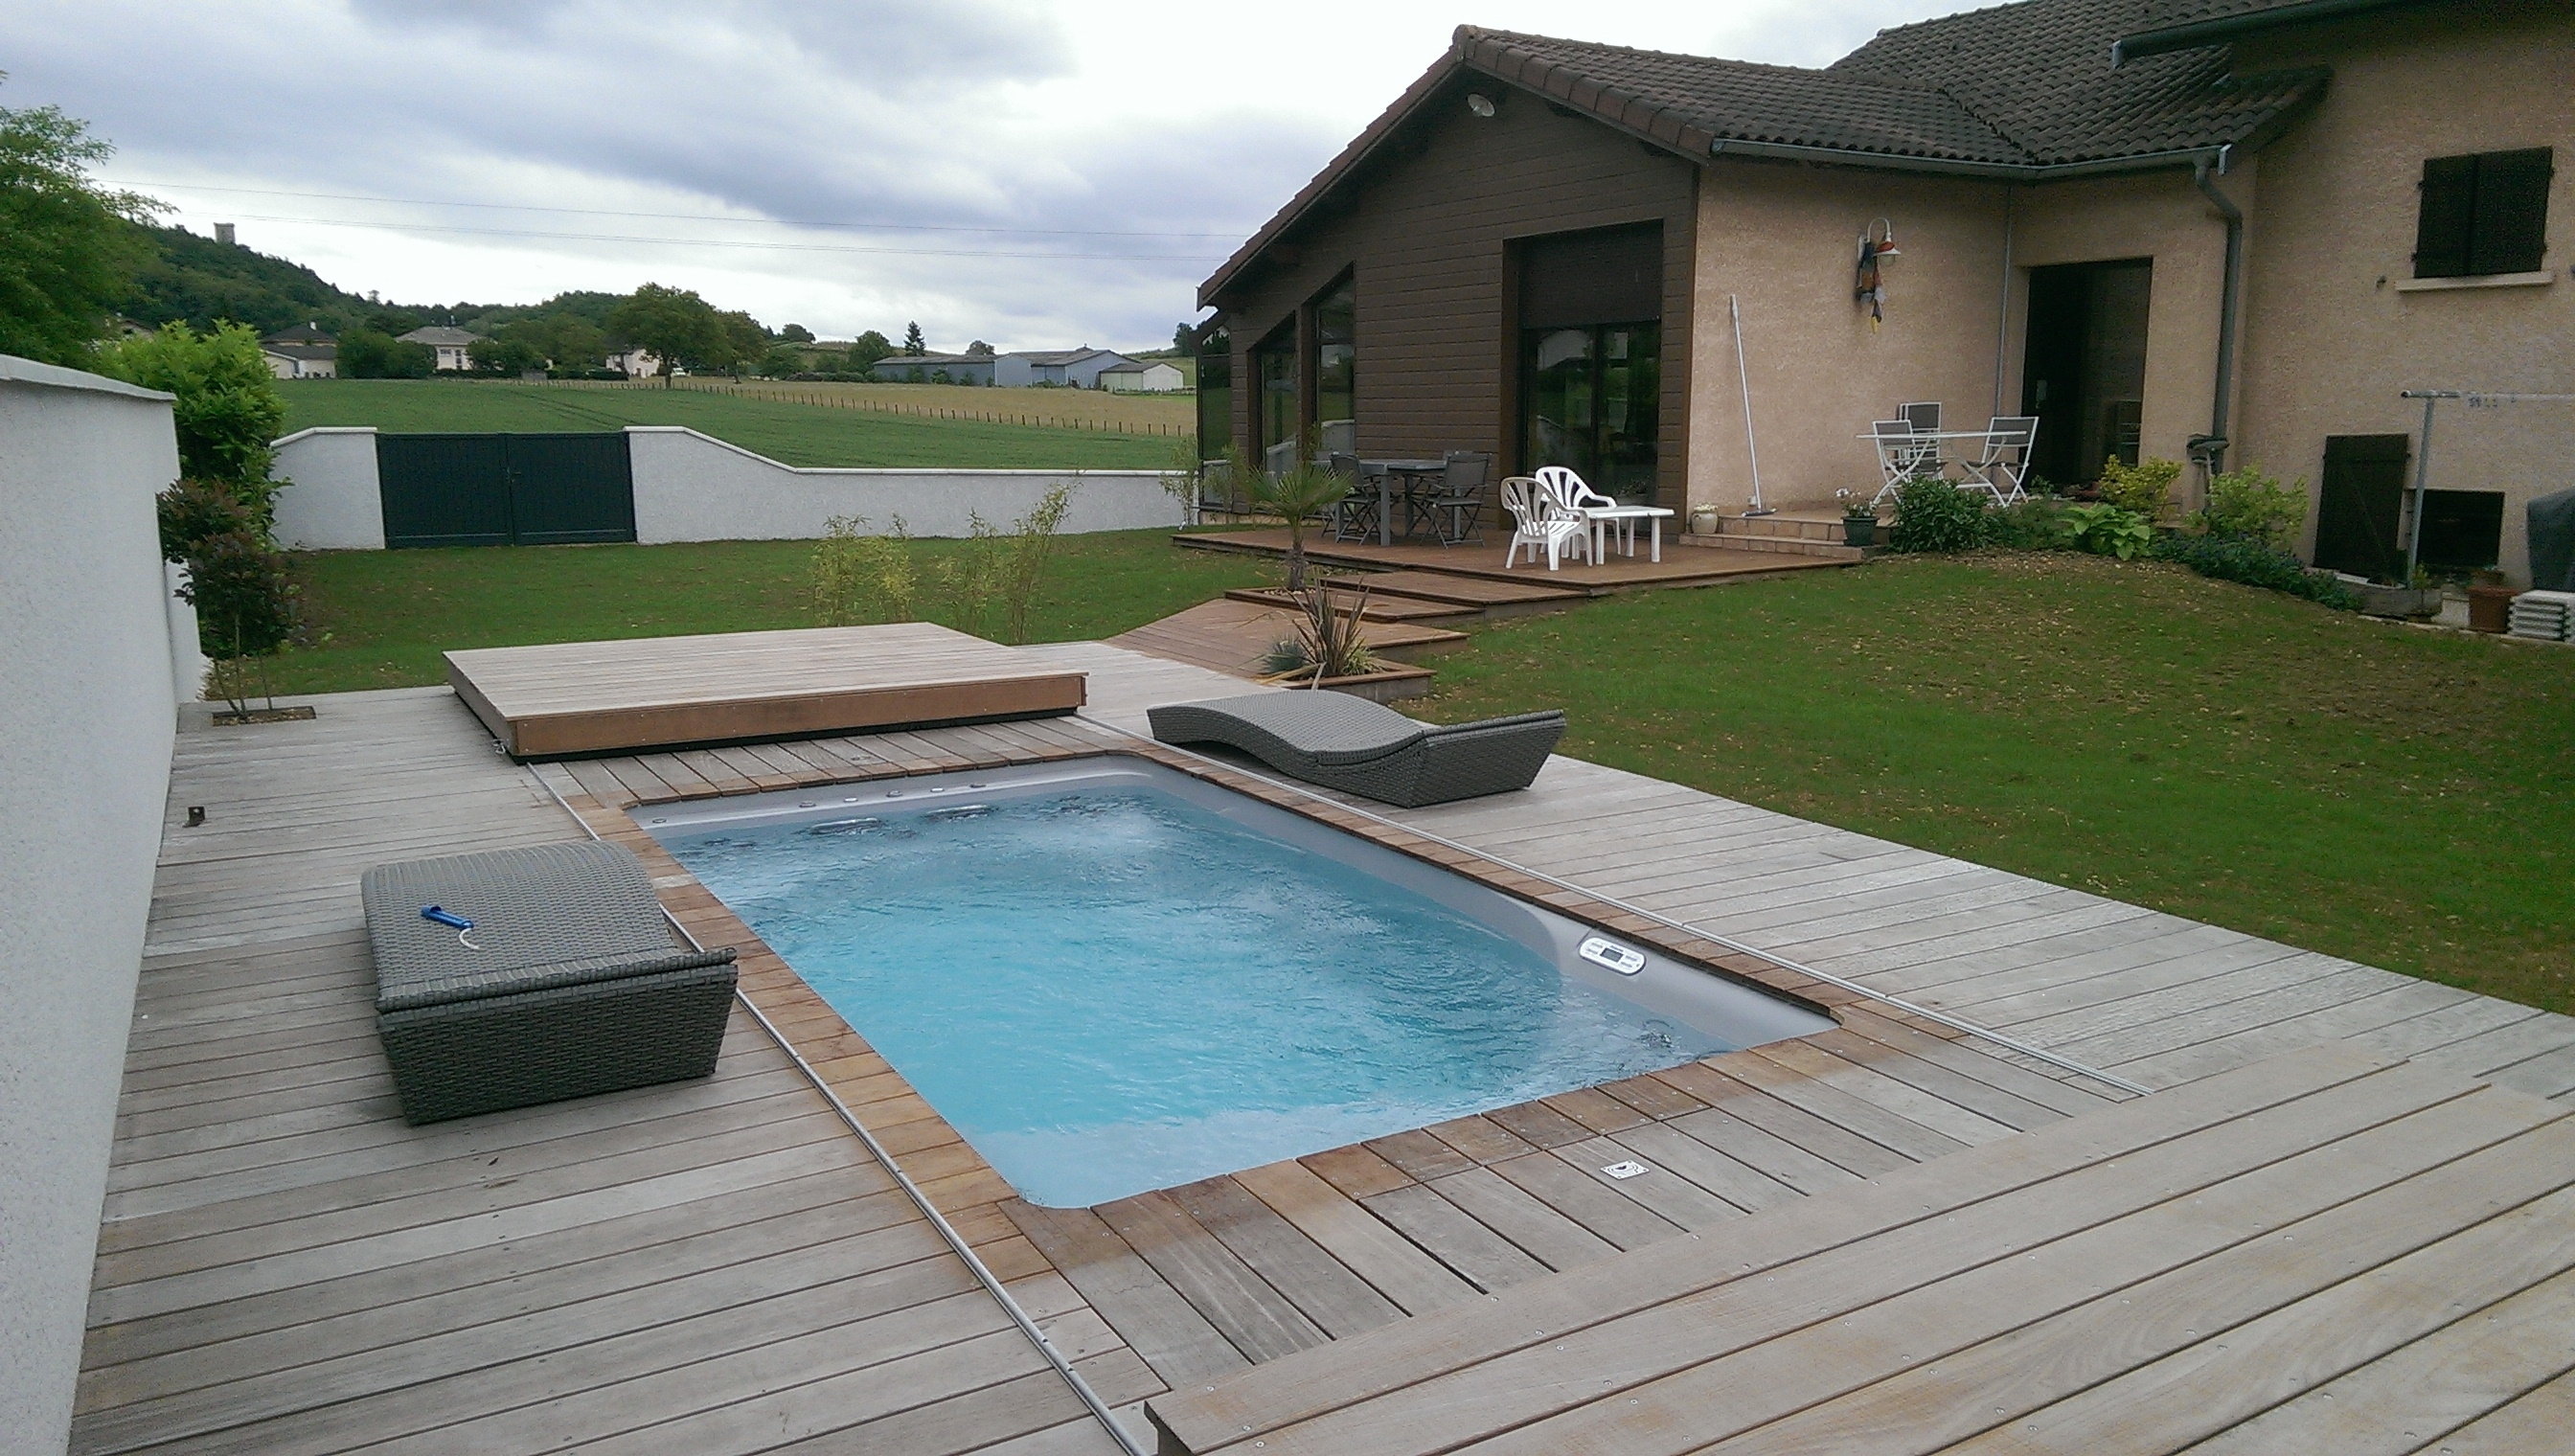 Piscine spa baln o nage contre courant pretty pool for Piscine a contre courant